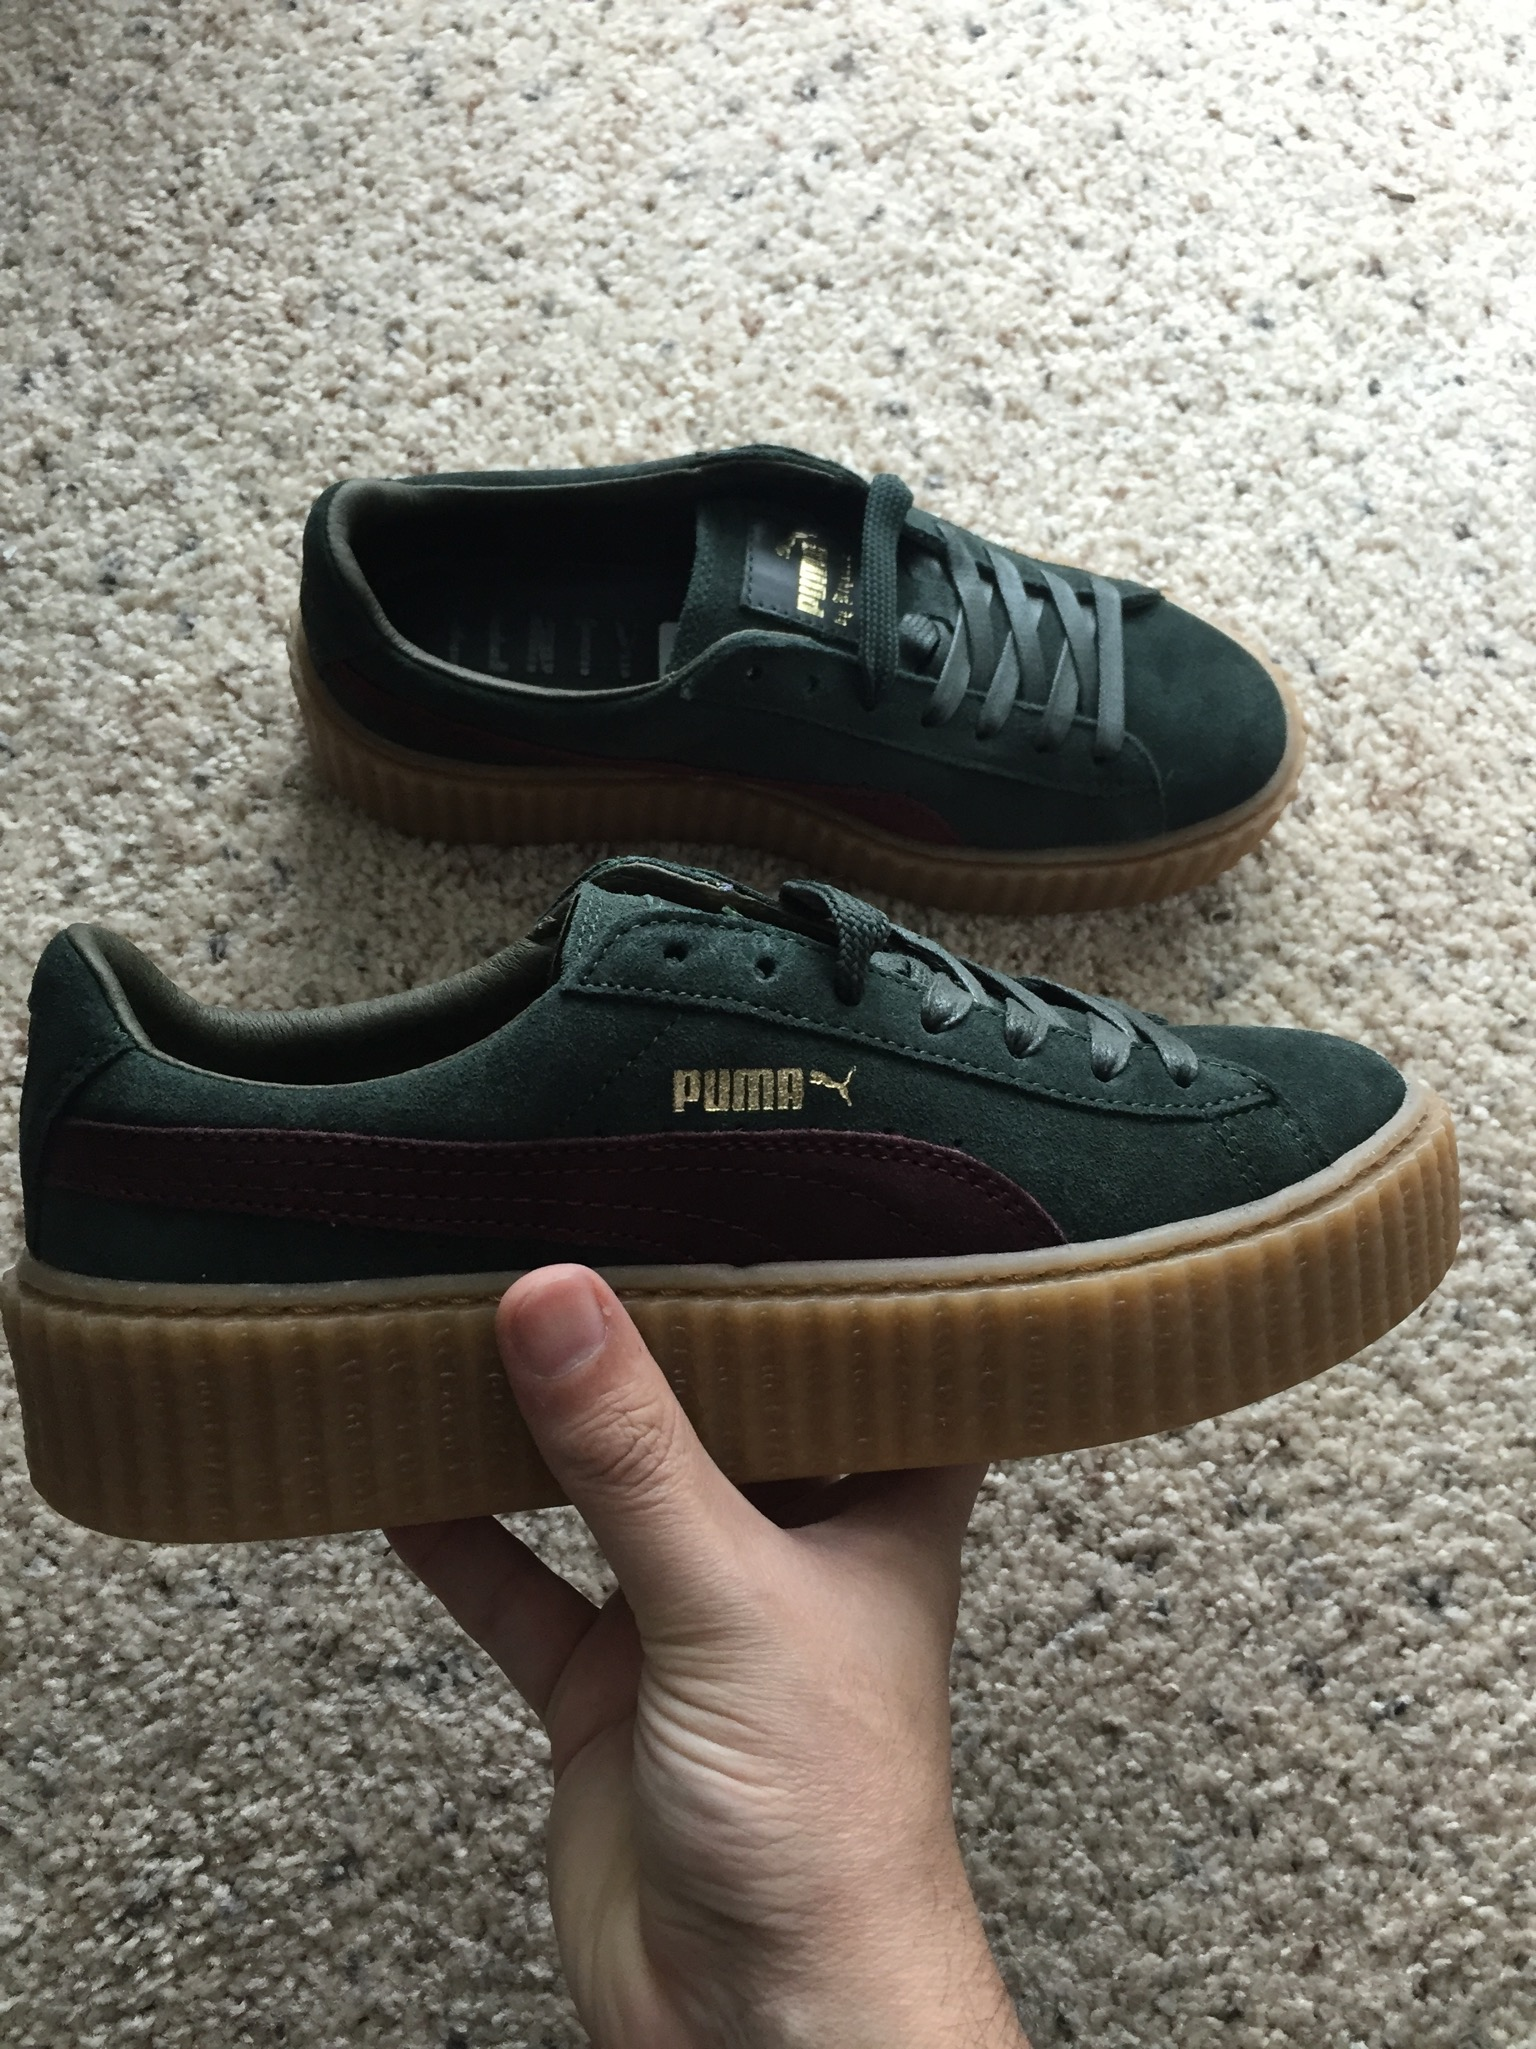 official photos bb32d 82084 Women's - The Rihanna x PUMA Creeper Green/Bordeaux/Gum